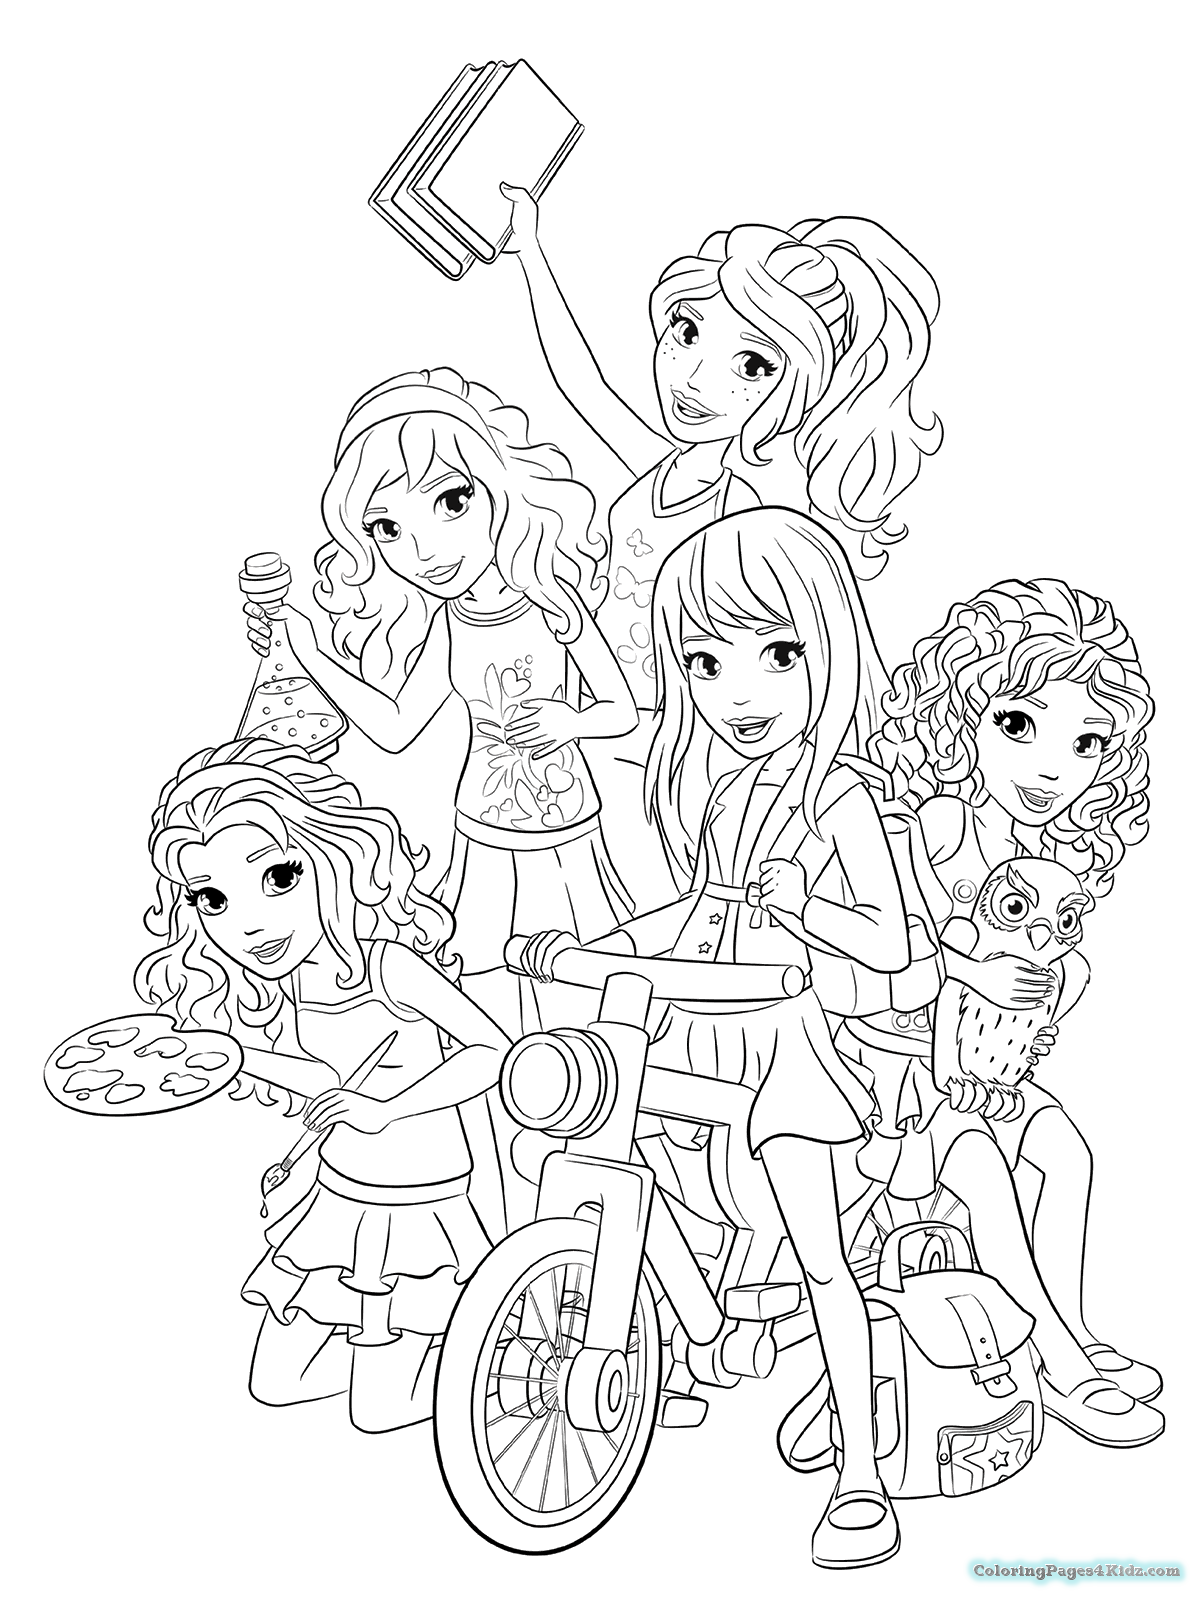 coloring lego friends lego friends all coloring page for kids printable free coloring friends lego